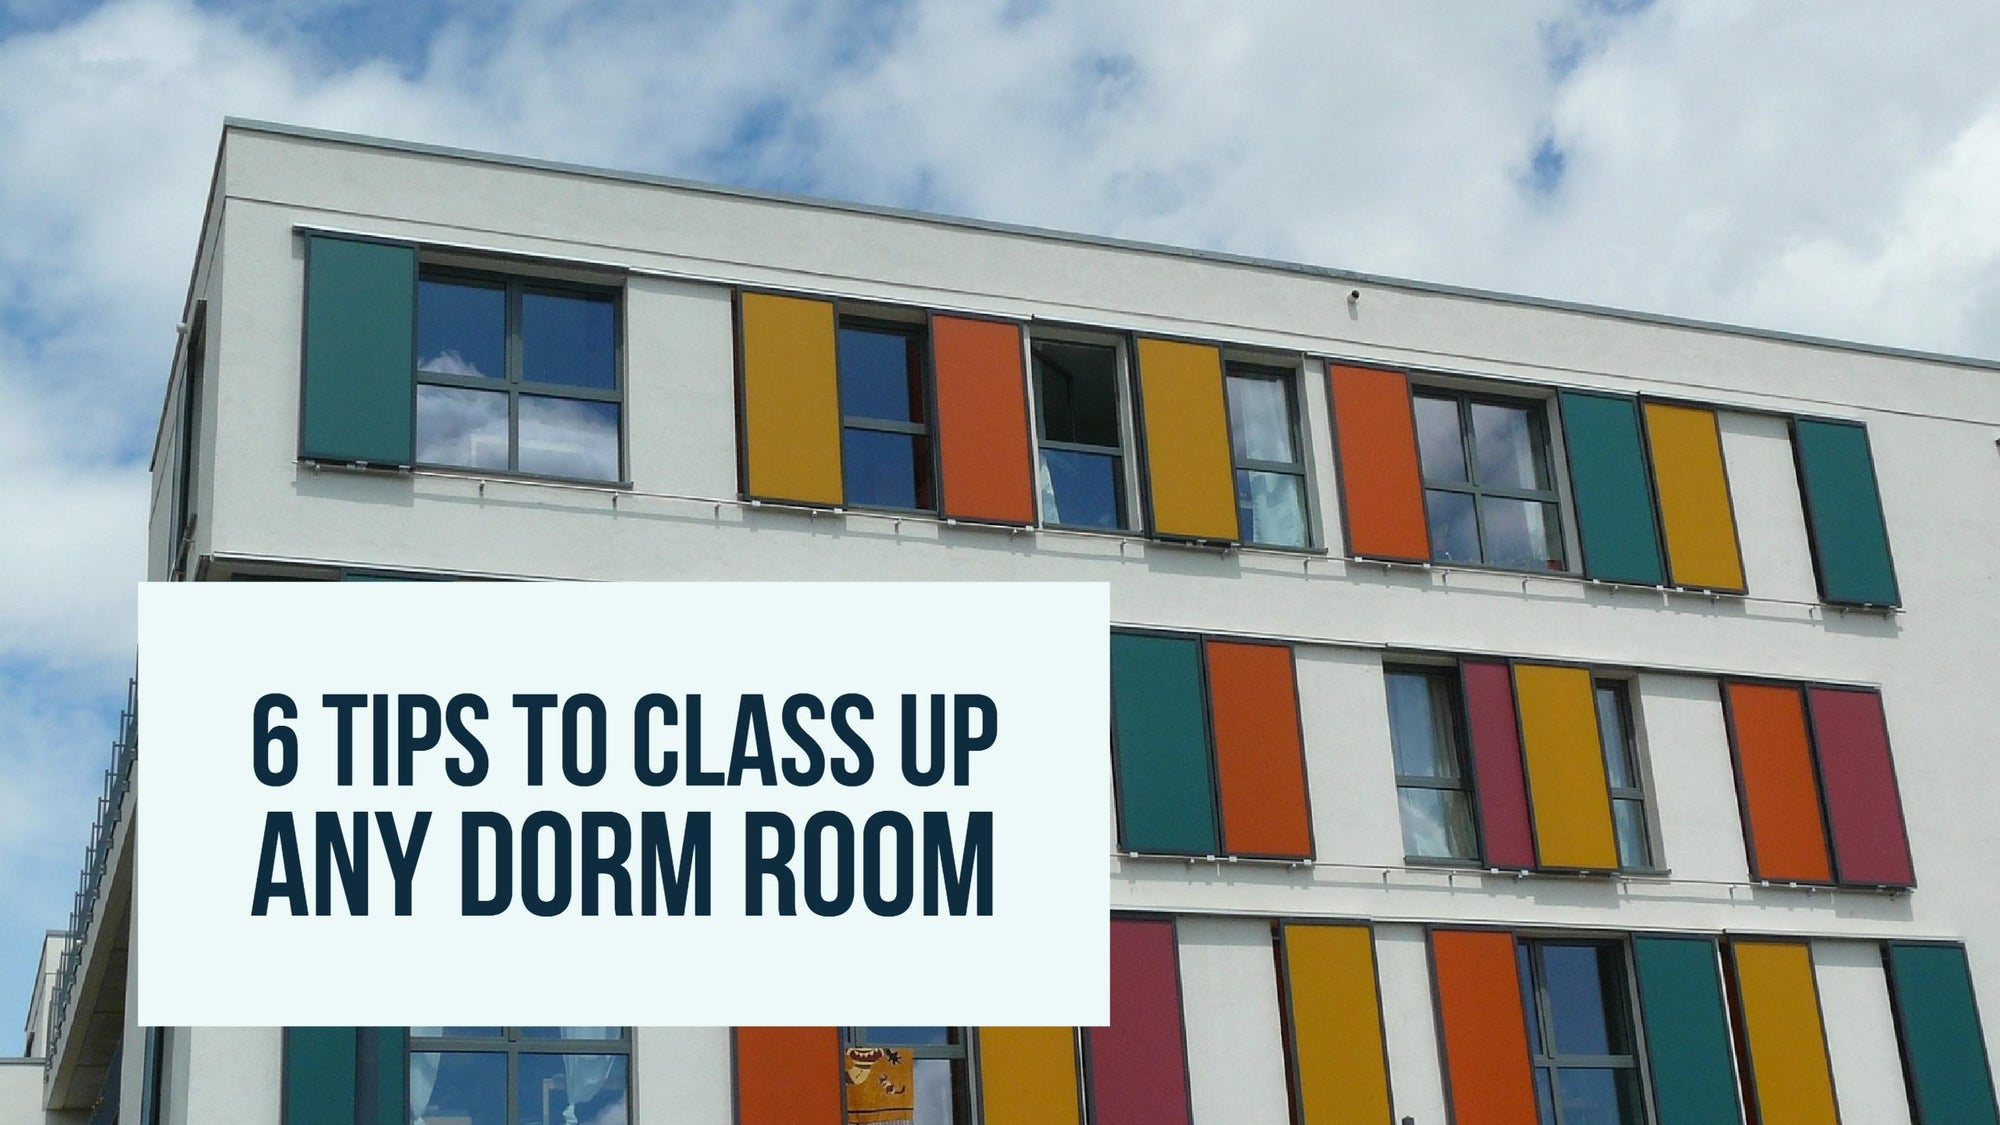 How To Class Up Any Dorm Room